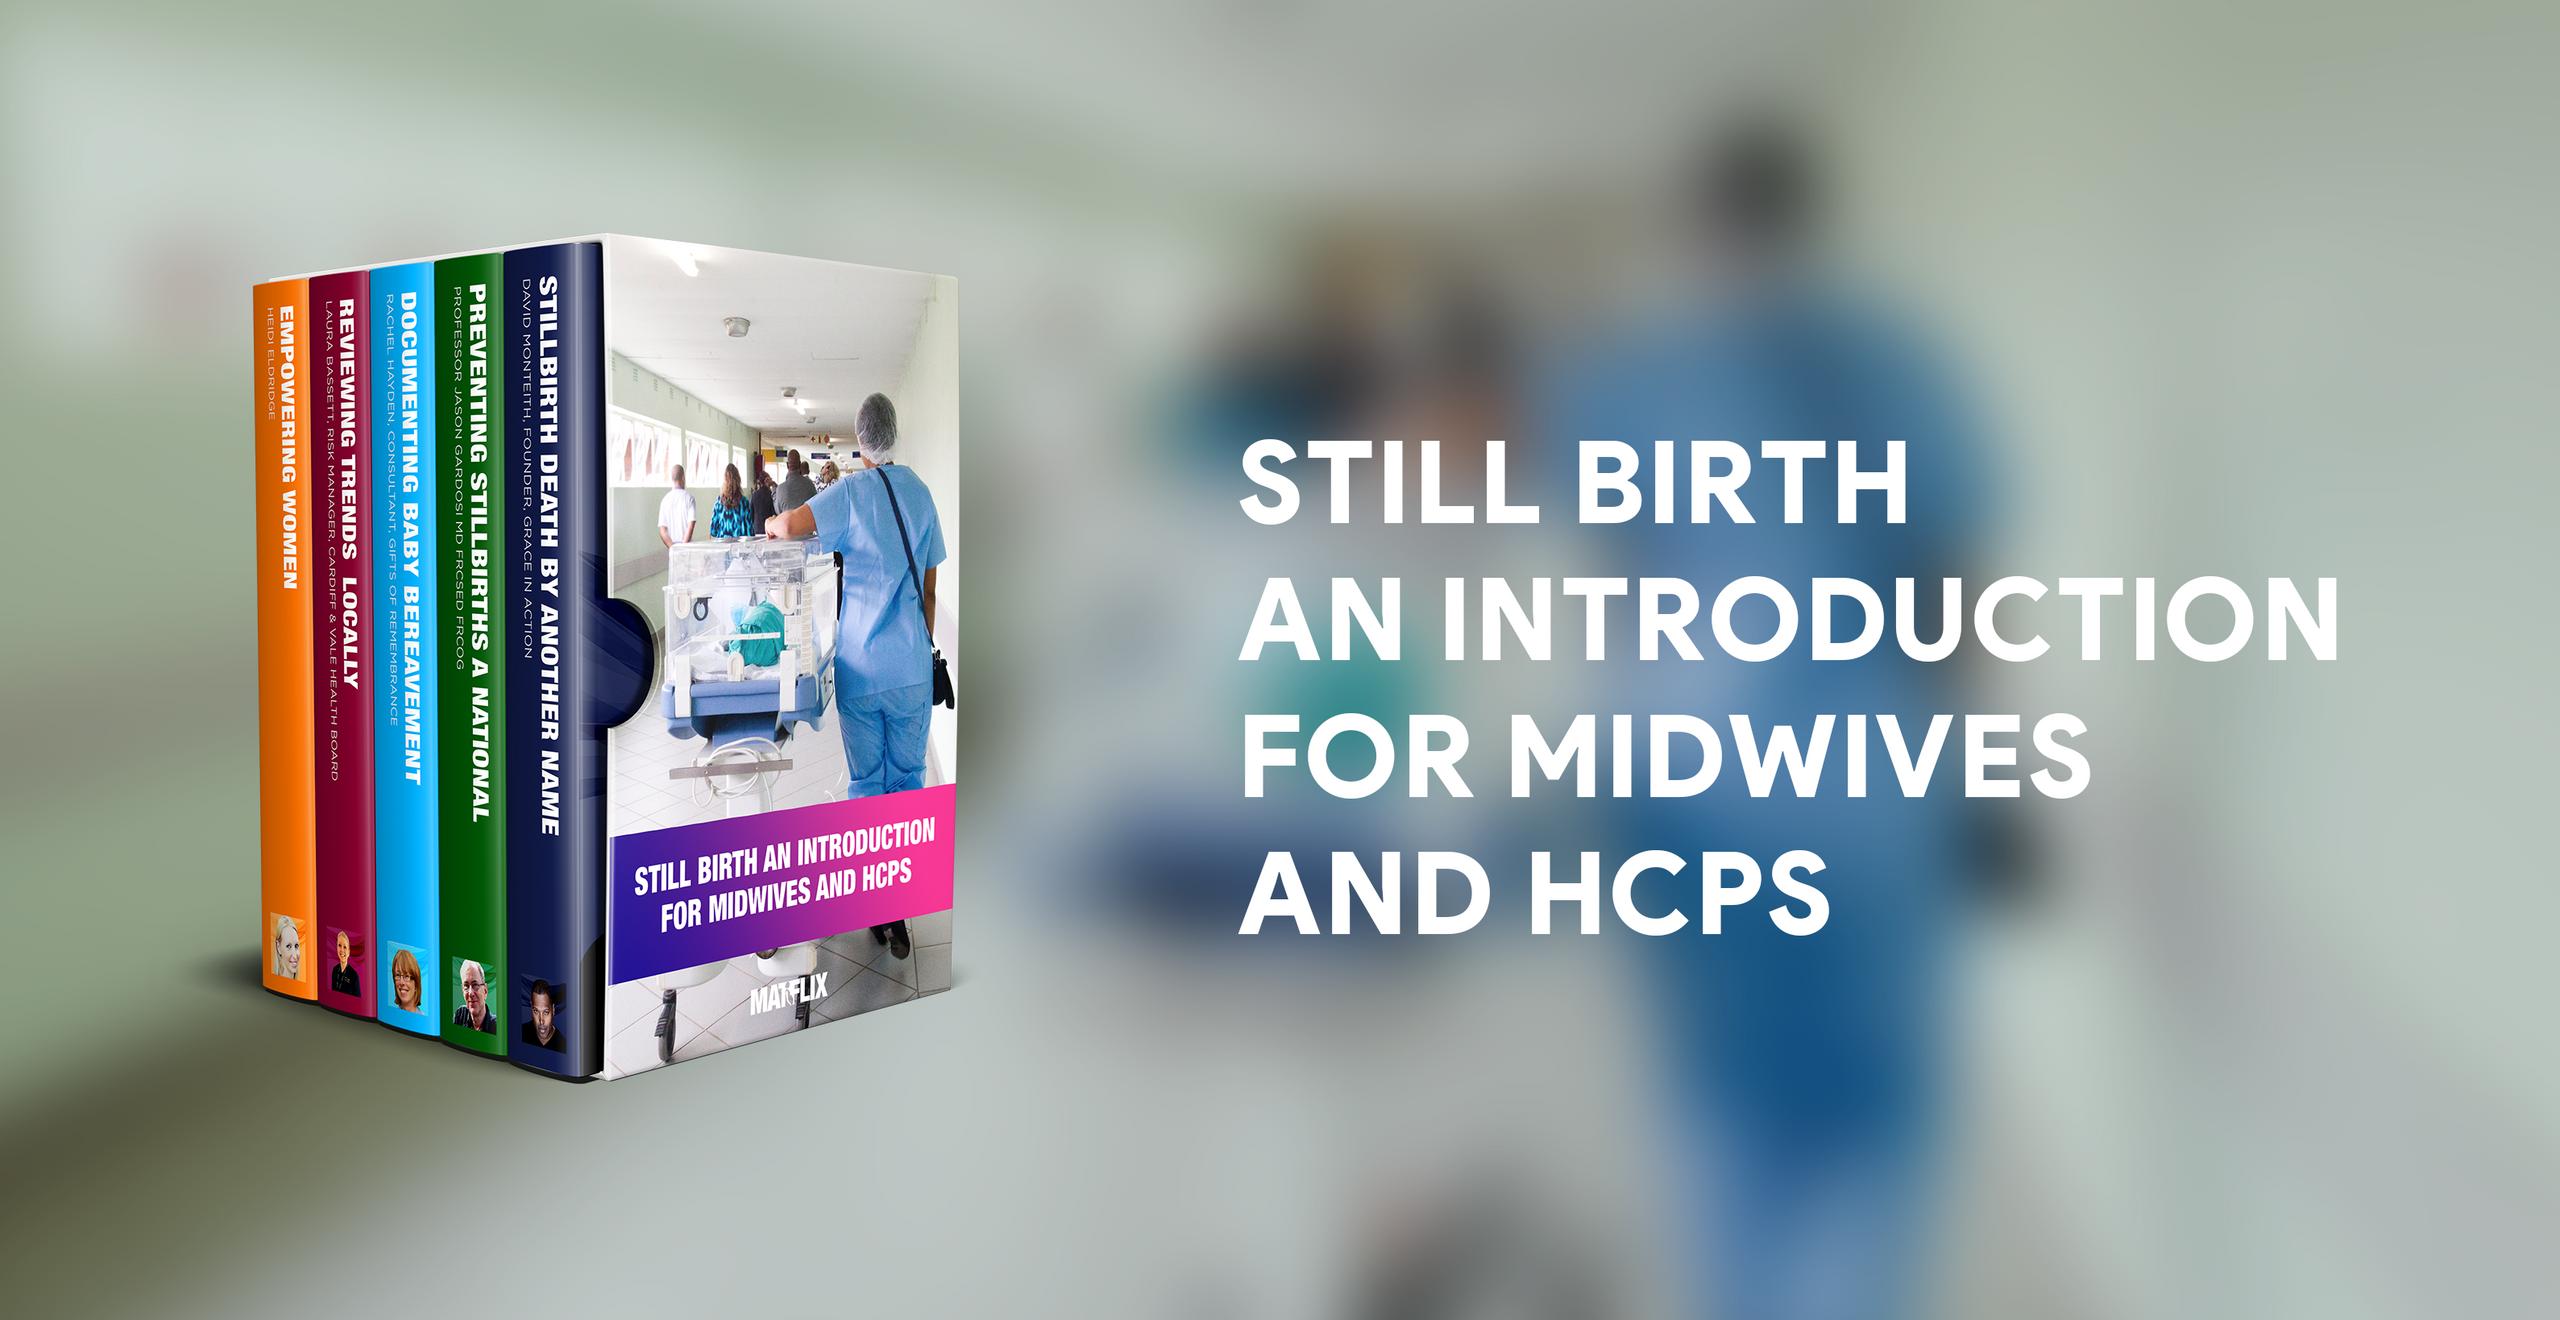 STILLBIRTH  AN INTRODUCTION FOR MIDWIVES AND HCPS